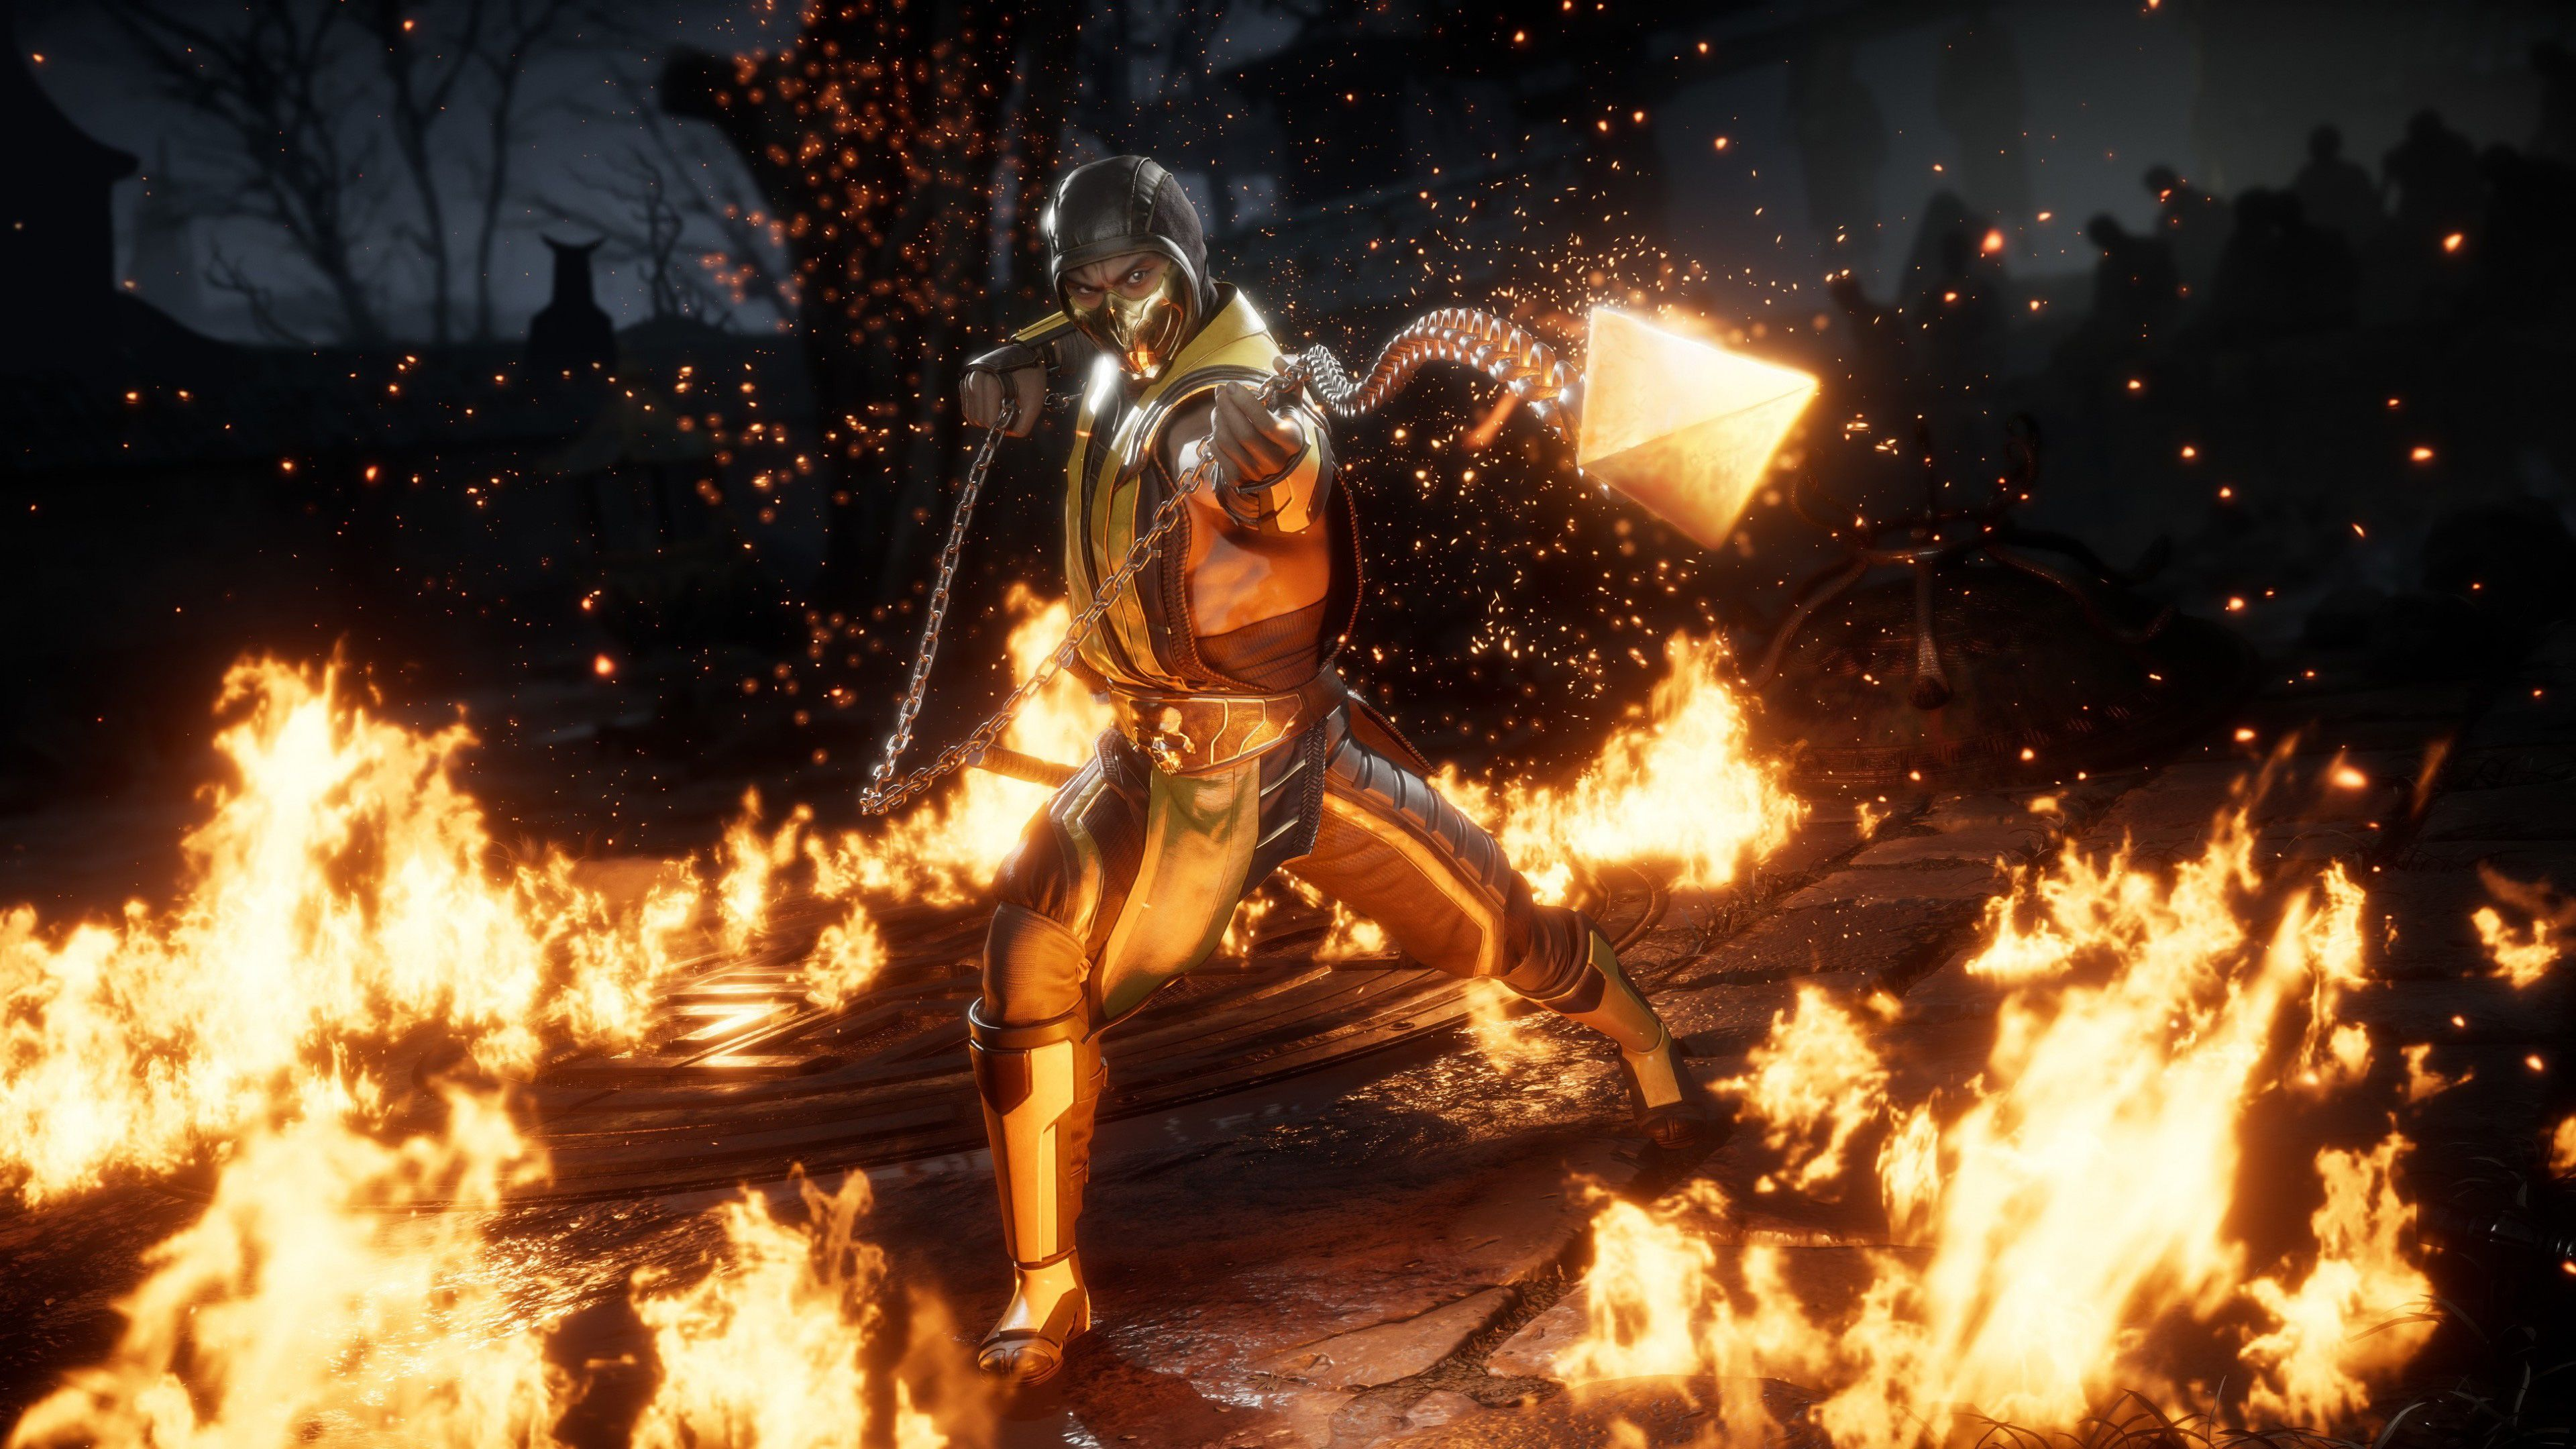 Mk 11 Wallpapers Top Free Mk 11 Backgrounds Wallpaperaccess